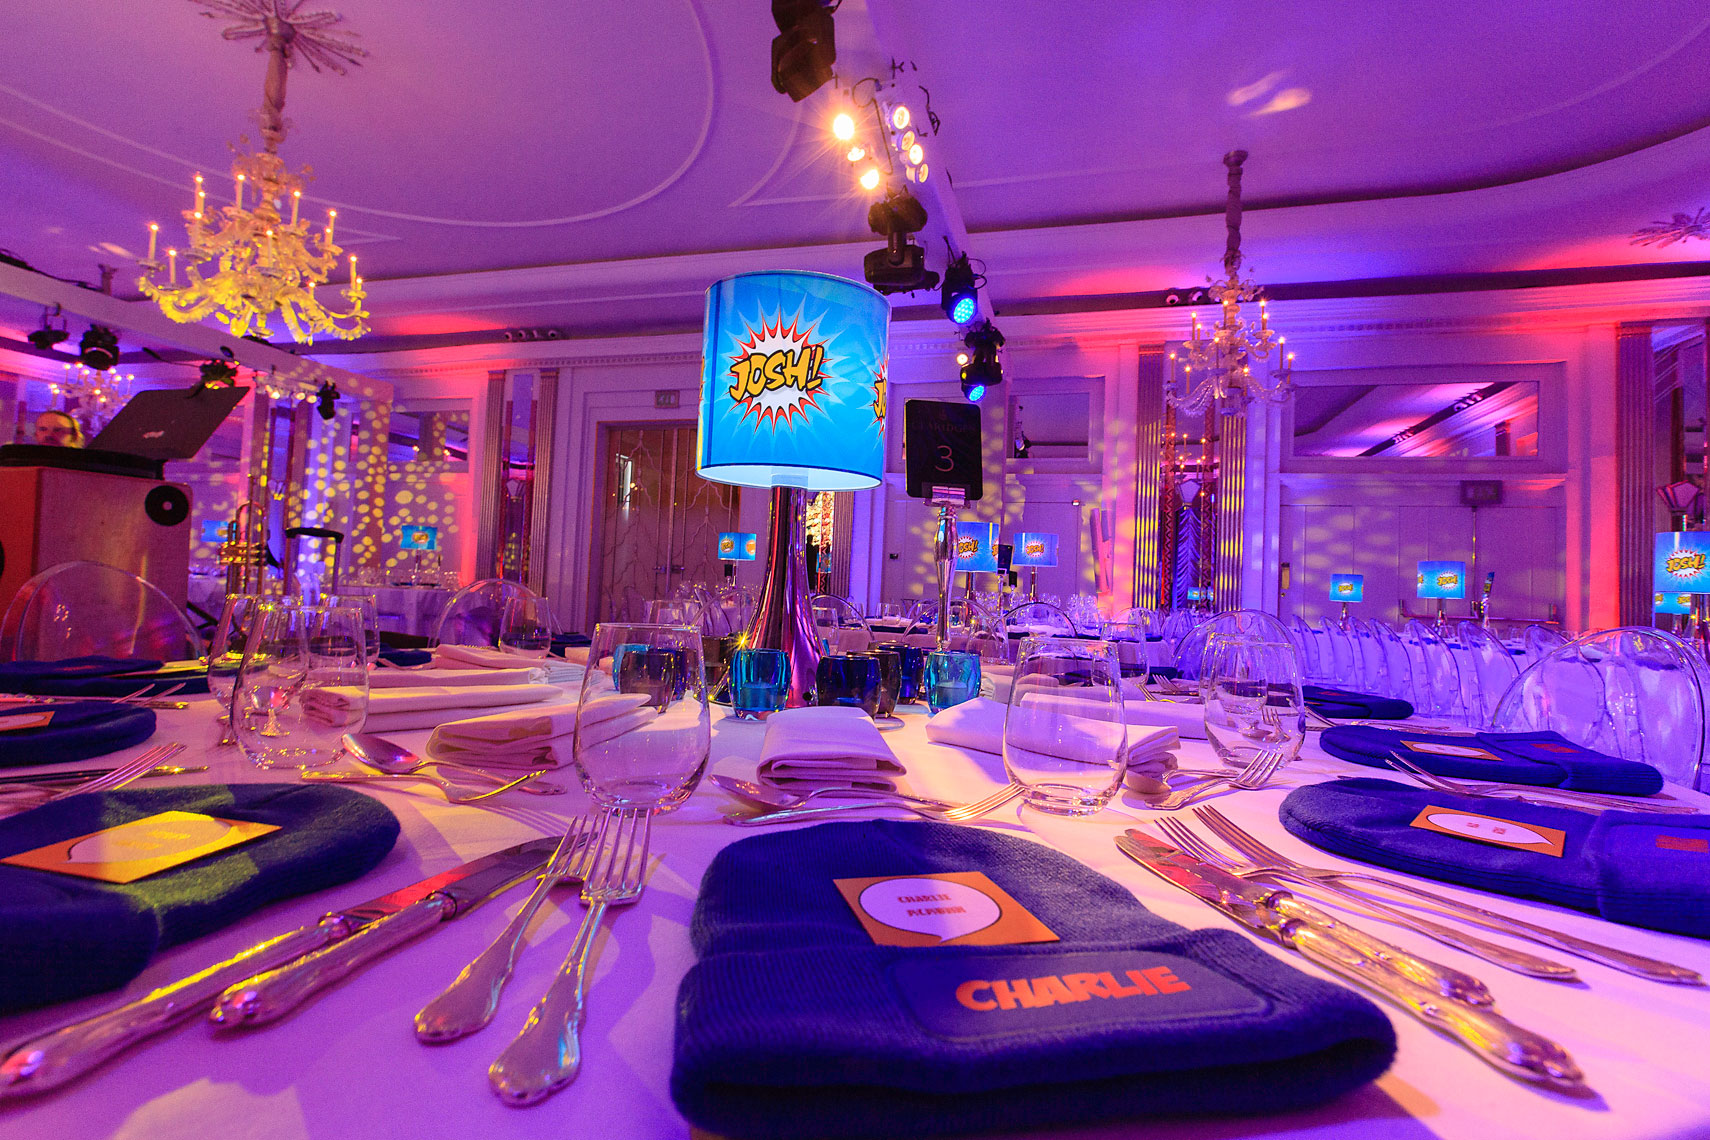 Corporate hotel ballroom interior decorated with floral bouquets on tables featuring purple lighting